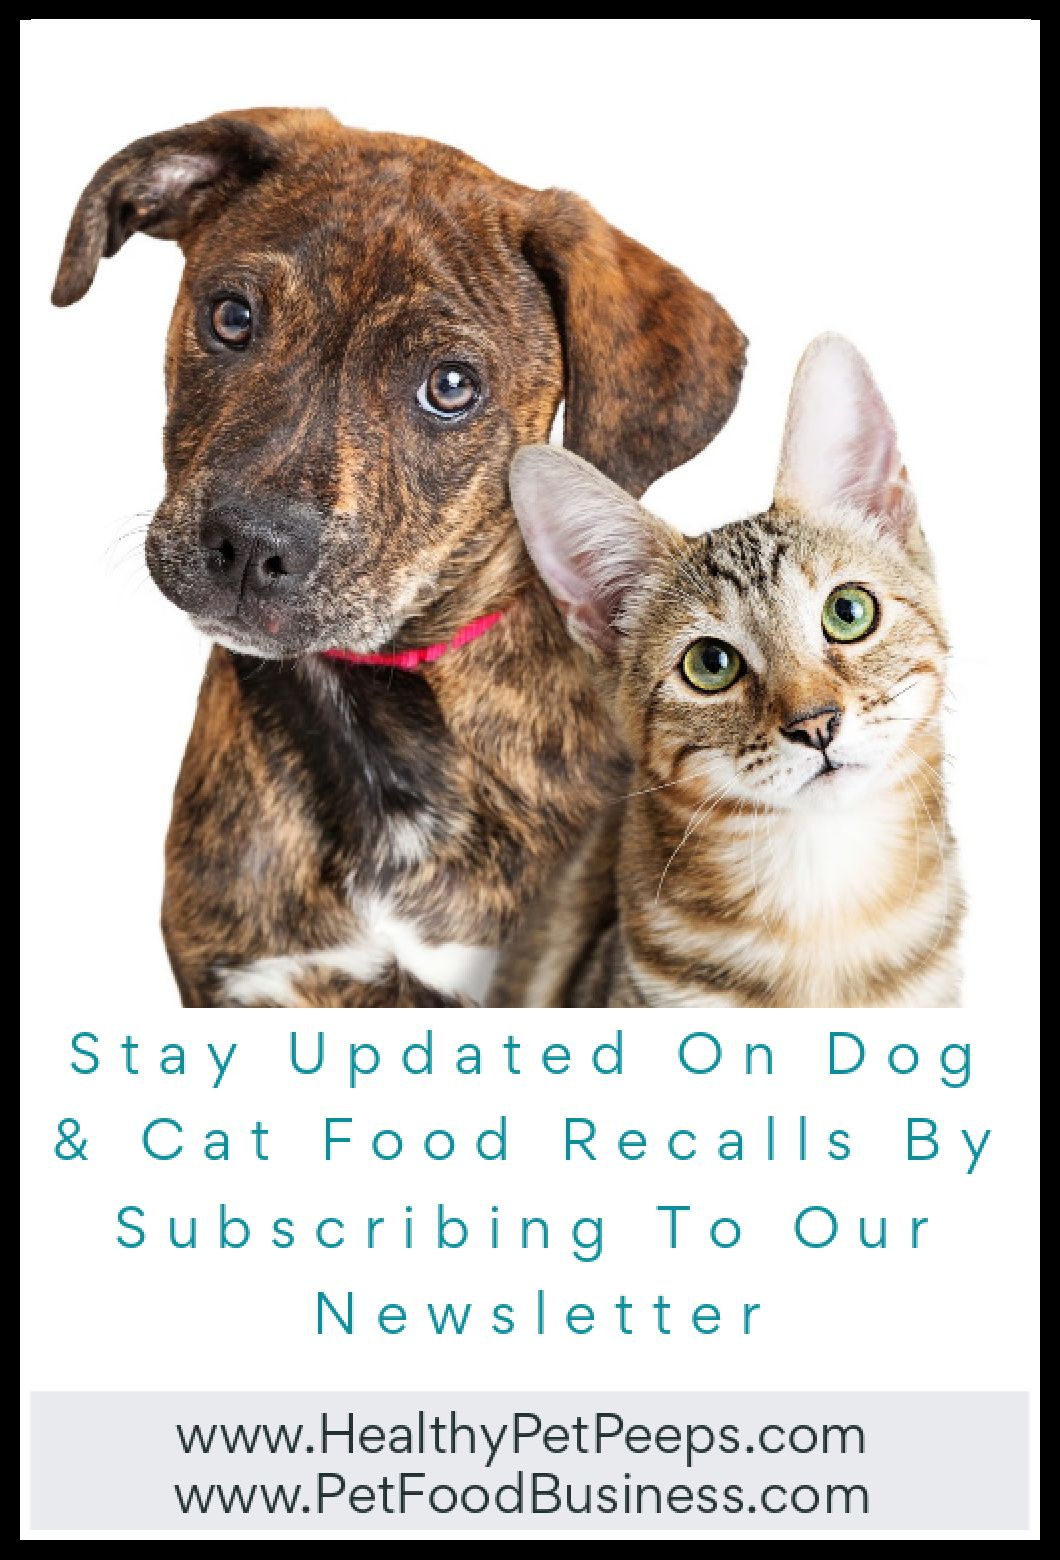 Receive Dog And Cat Food Recalls By Email Subscribe To Our Newsletter In 2020 Dog Food Recall Dogs Cat Food